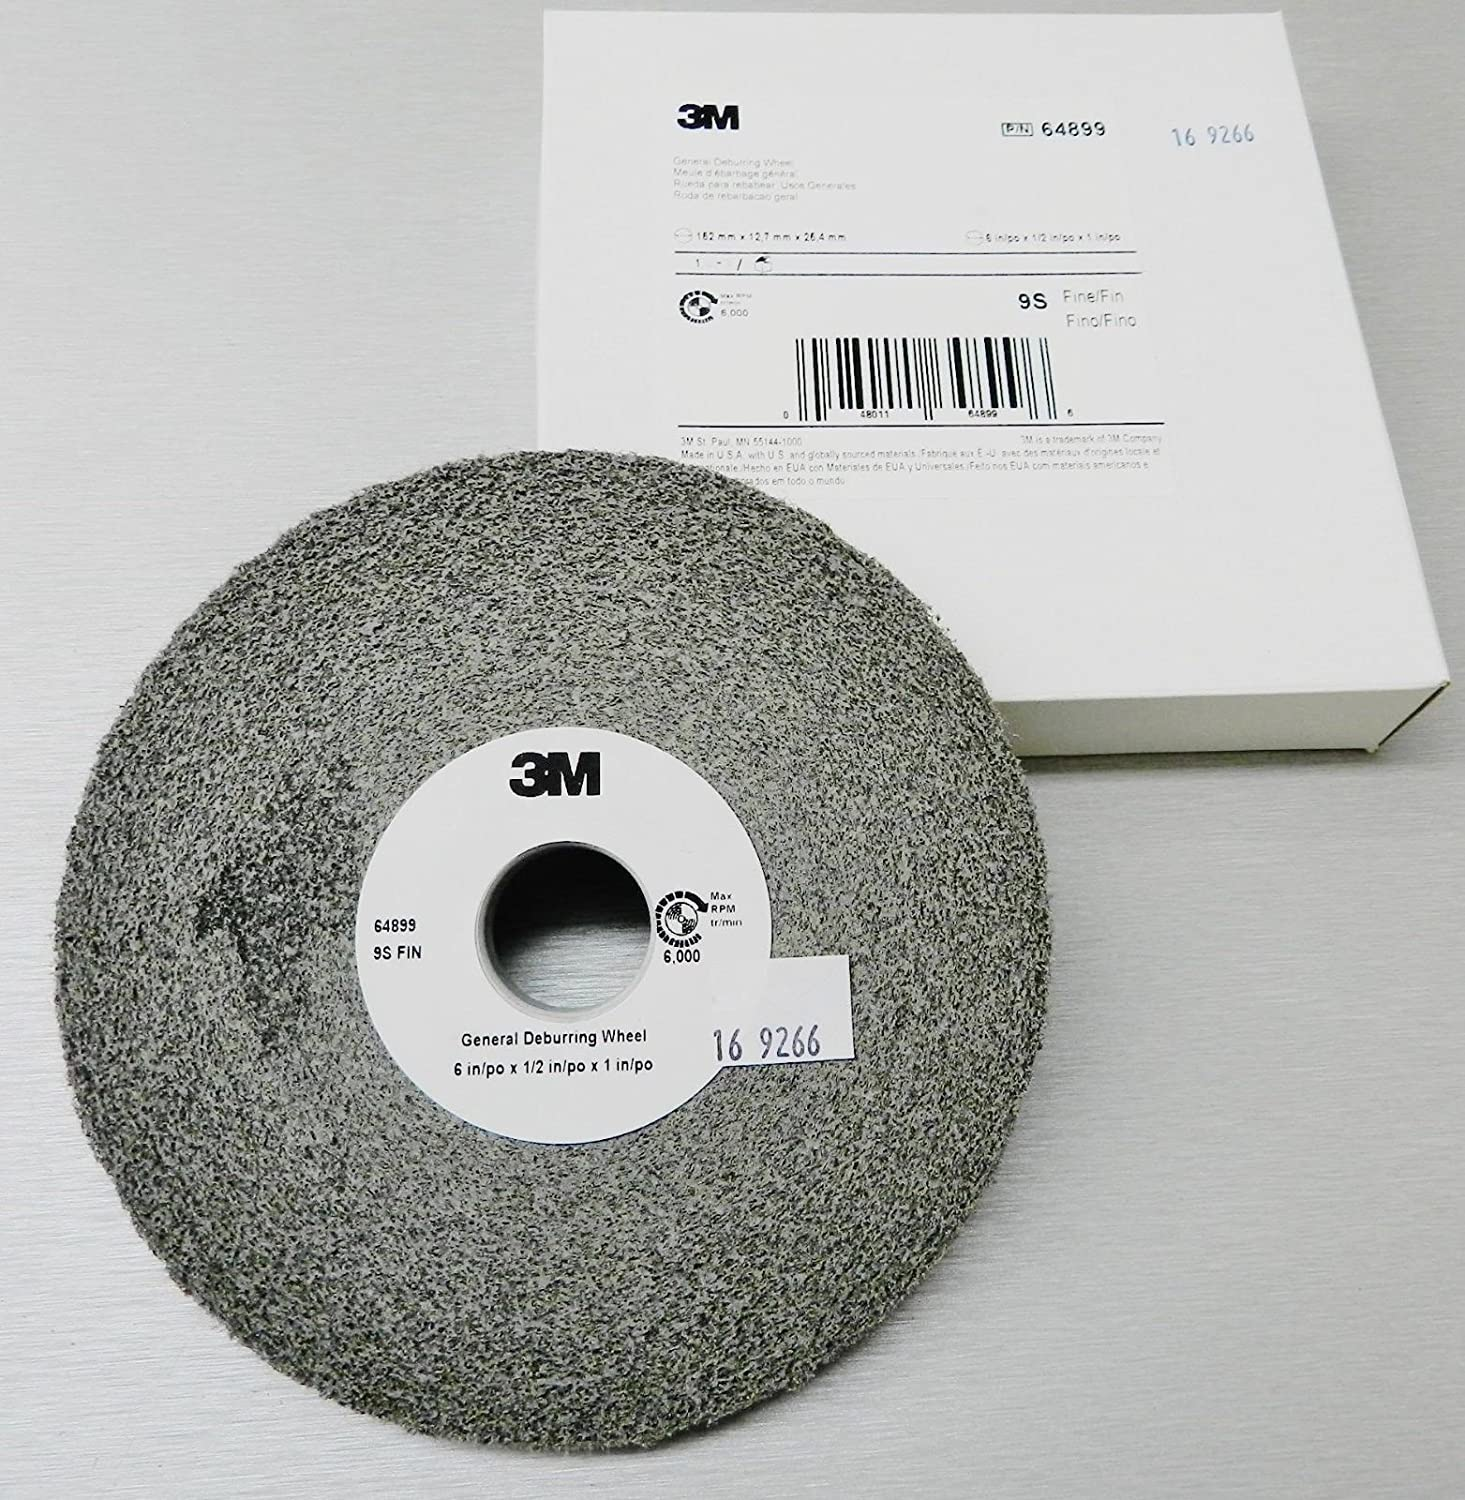 3M Deburring Wheel General Purpose Wheel 6x1//2 9S-FIN # 64899 Cleaning Finishing